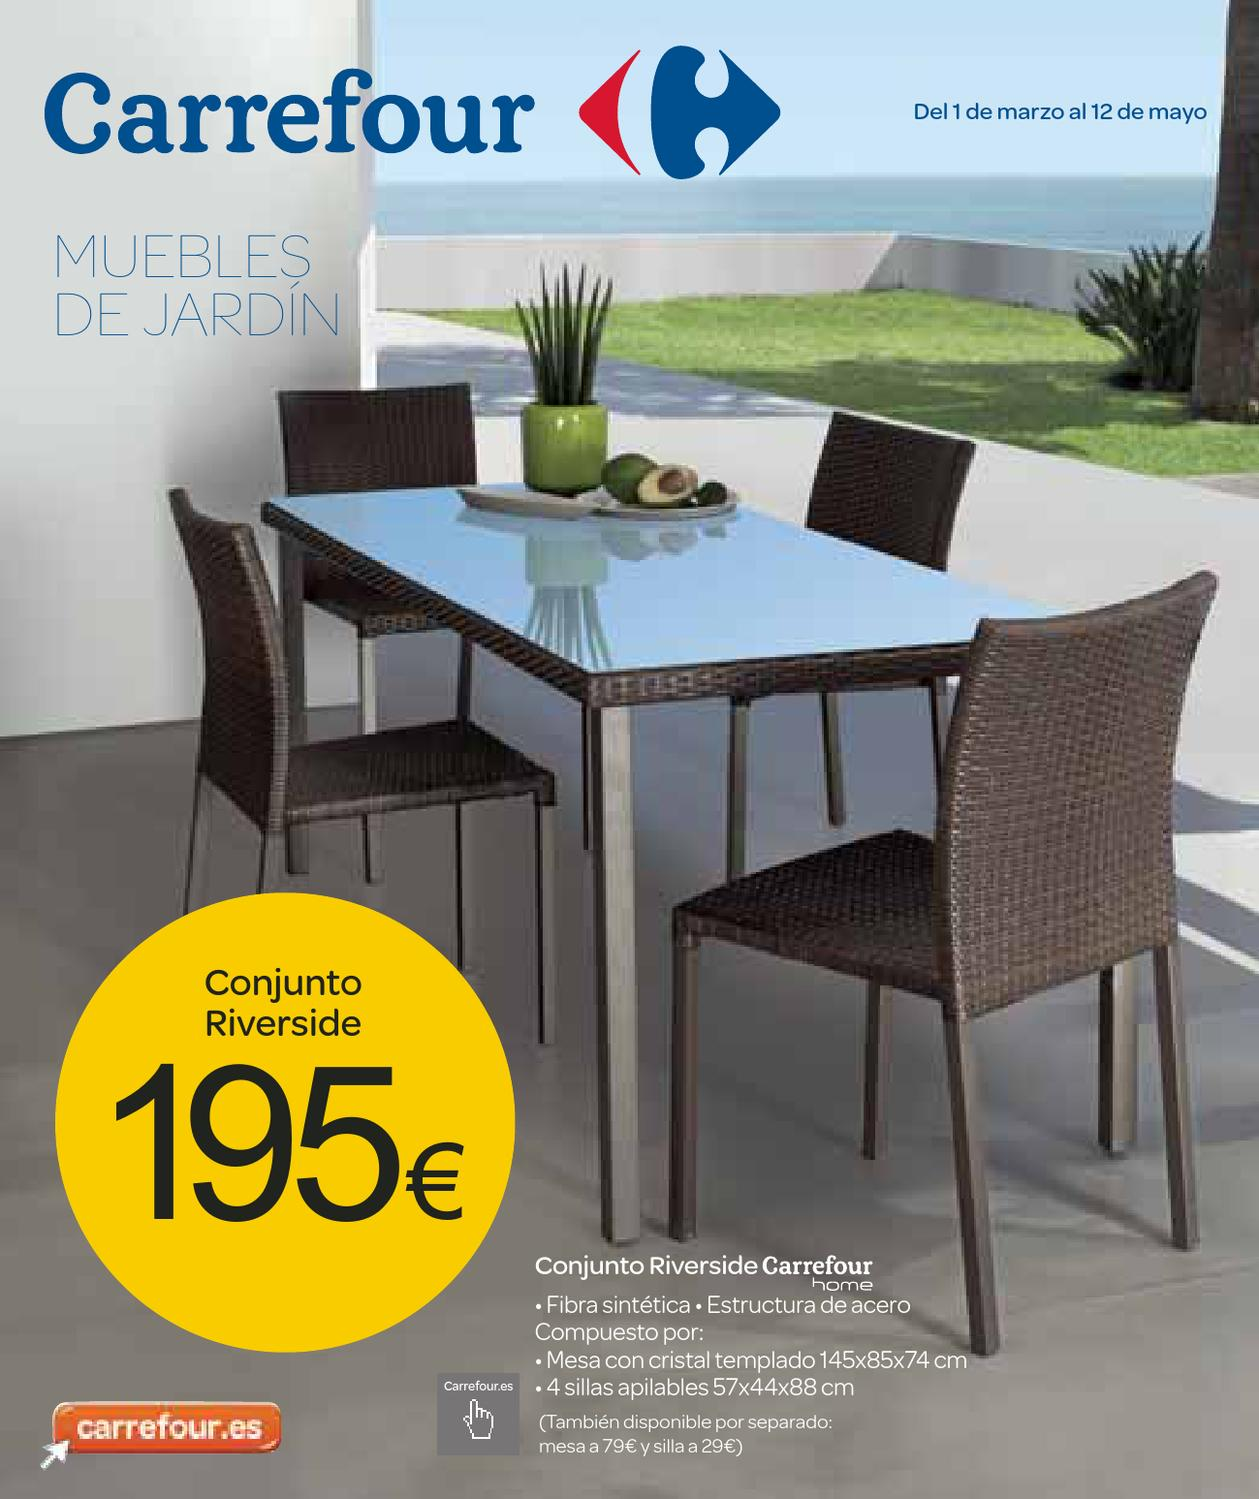 Catalogo de muebles de jardin carrefour by milyuncatalogos for Muebles de jardin alcampo